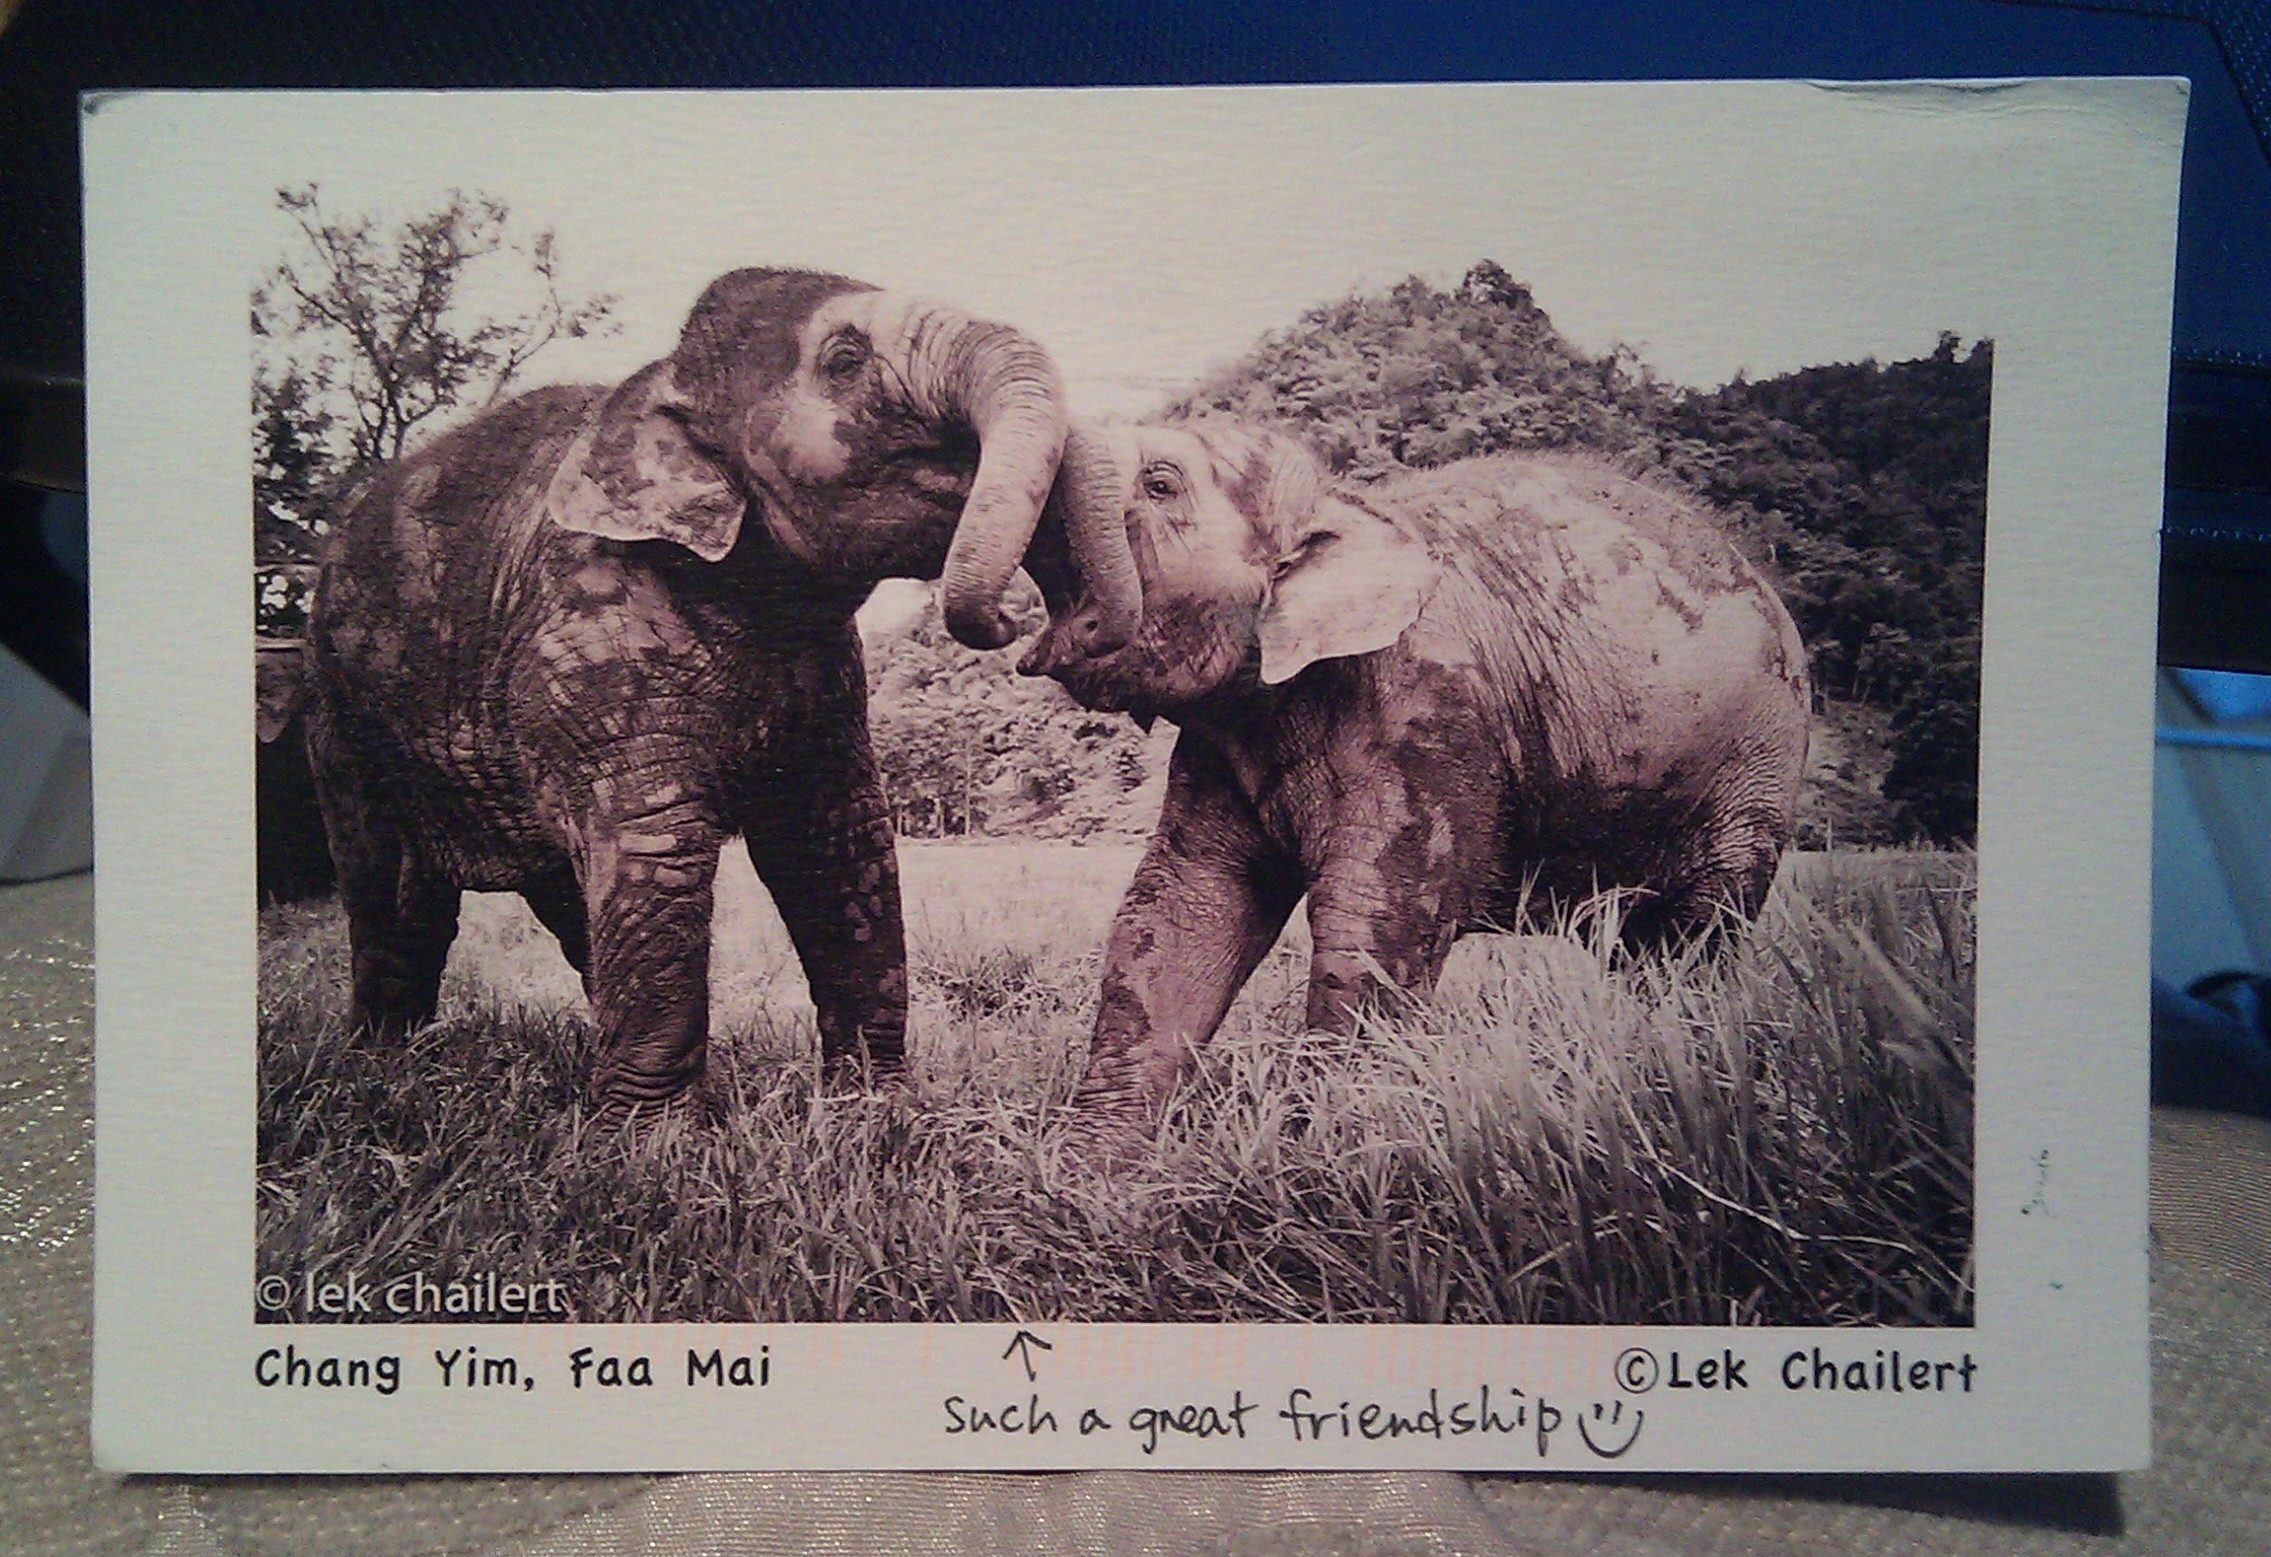 From the Elephant Nature Park, but Lek Chailert